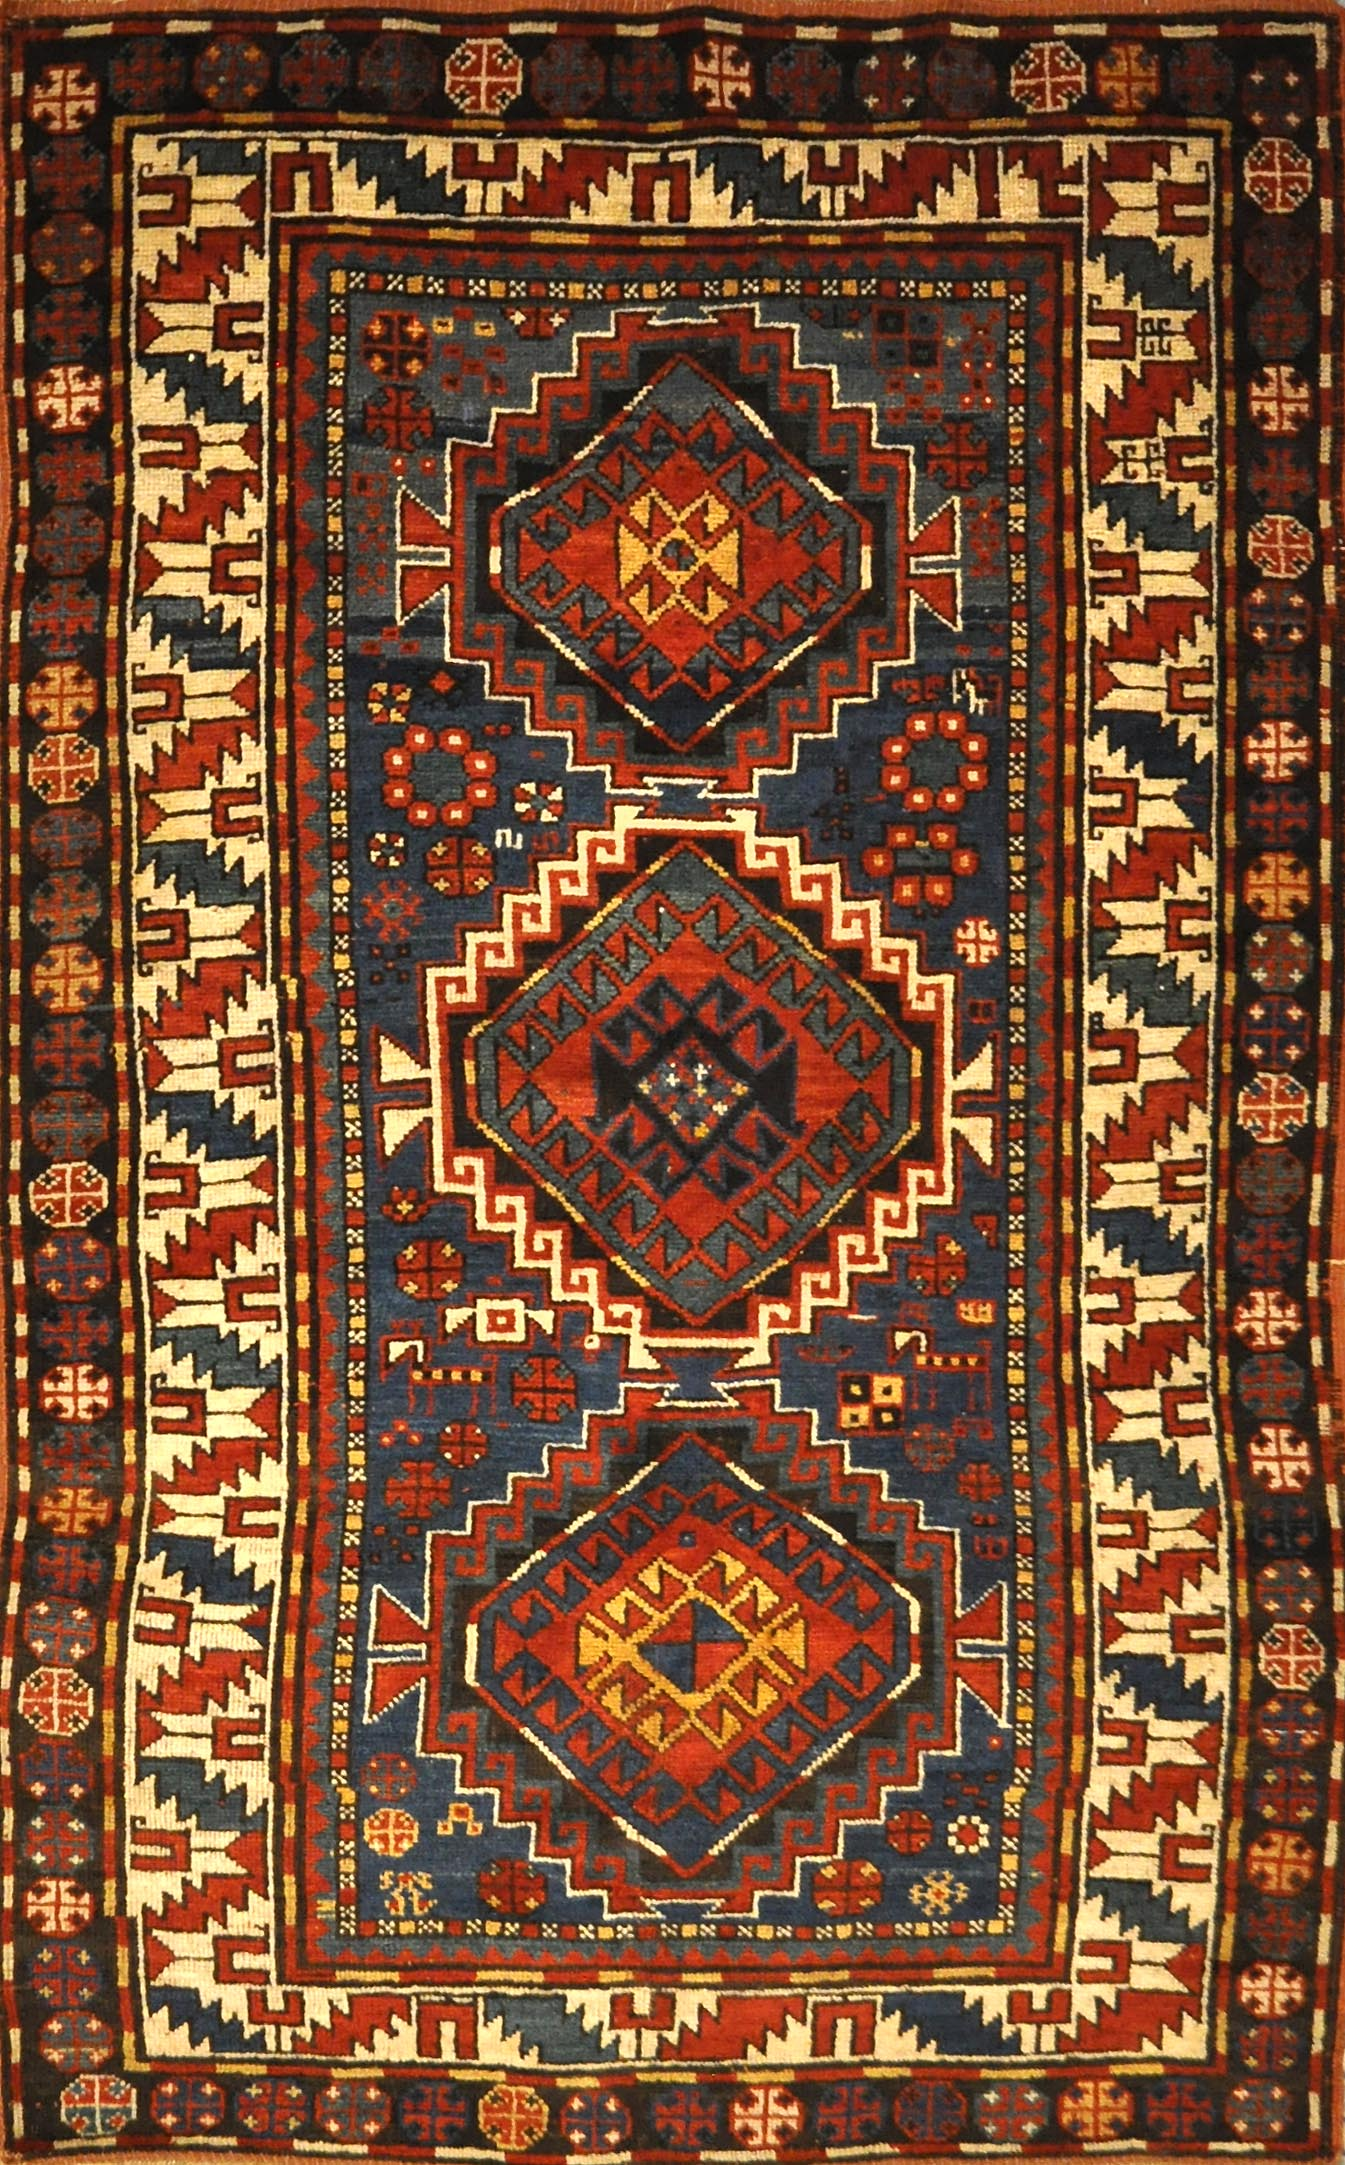 Antique Kazak Rug Circa 1880. A piece of genuine authentic antique woven carpet art sold by Santa Barbara Design Center, Rugs and More.